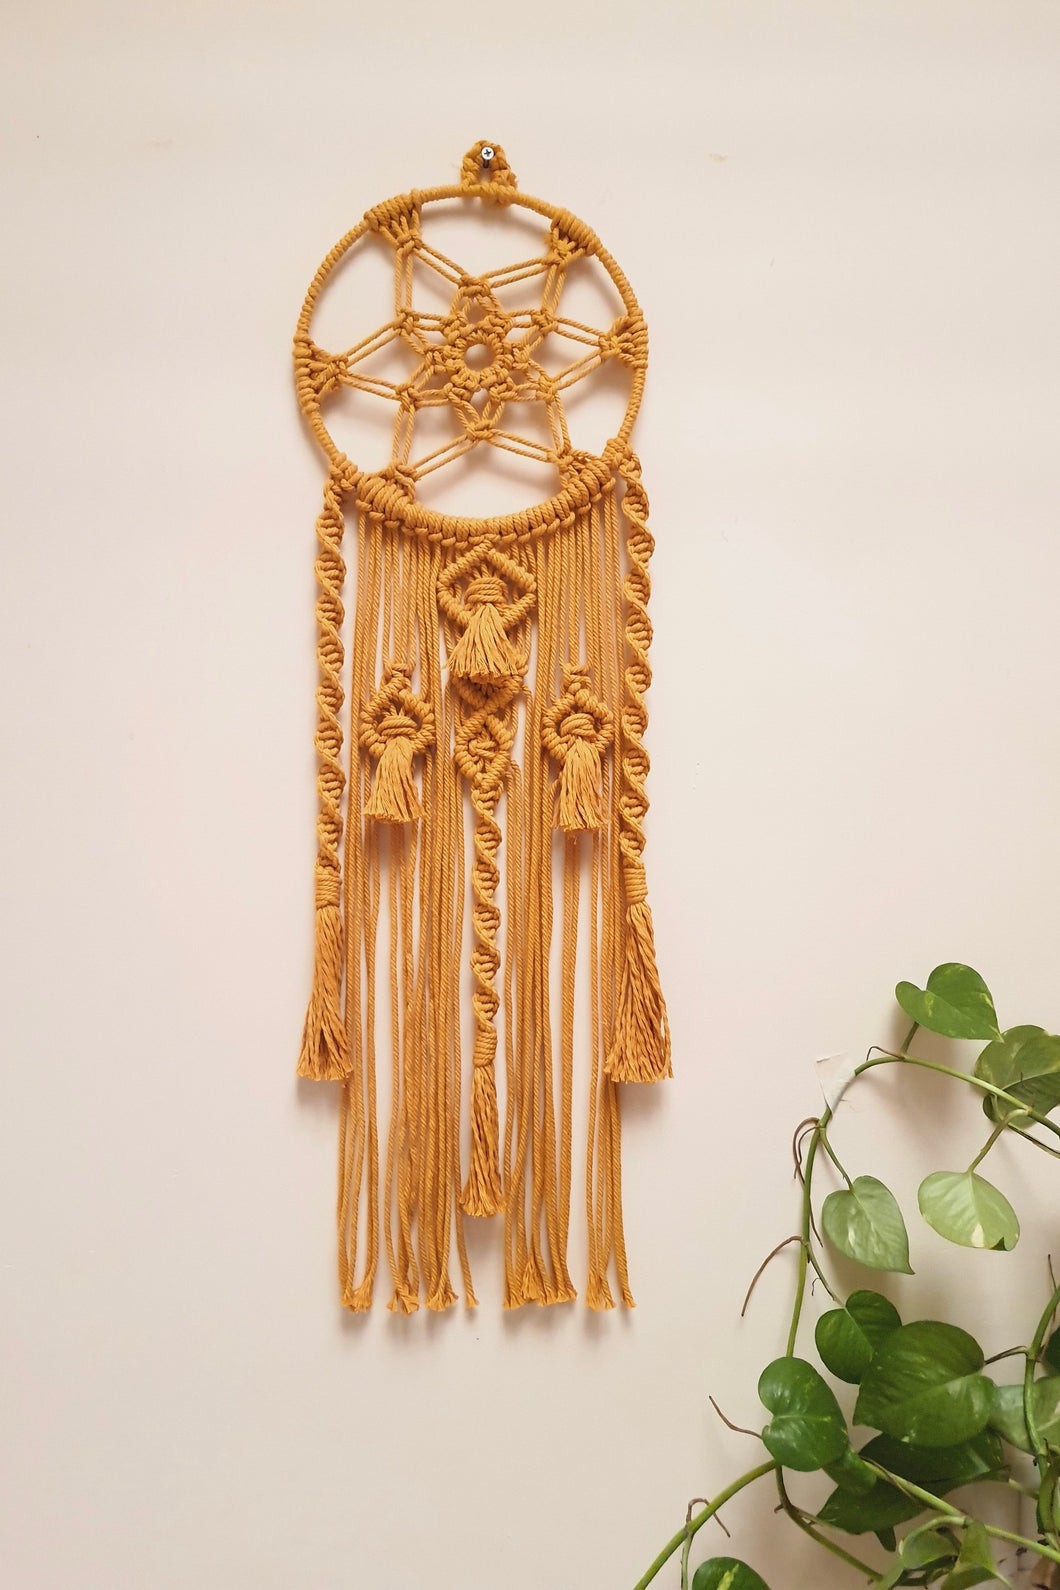 Handcrafted Macrame 'Sunrise' Dreamcatcher